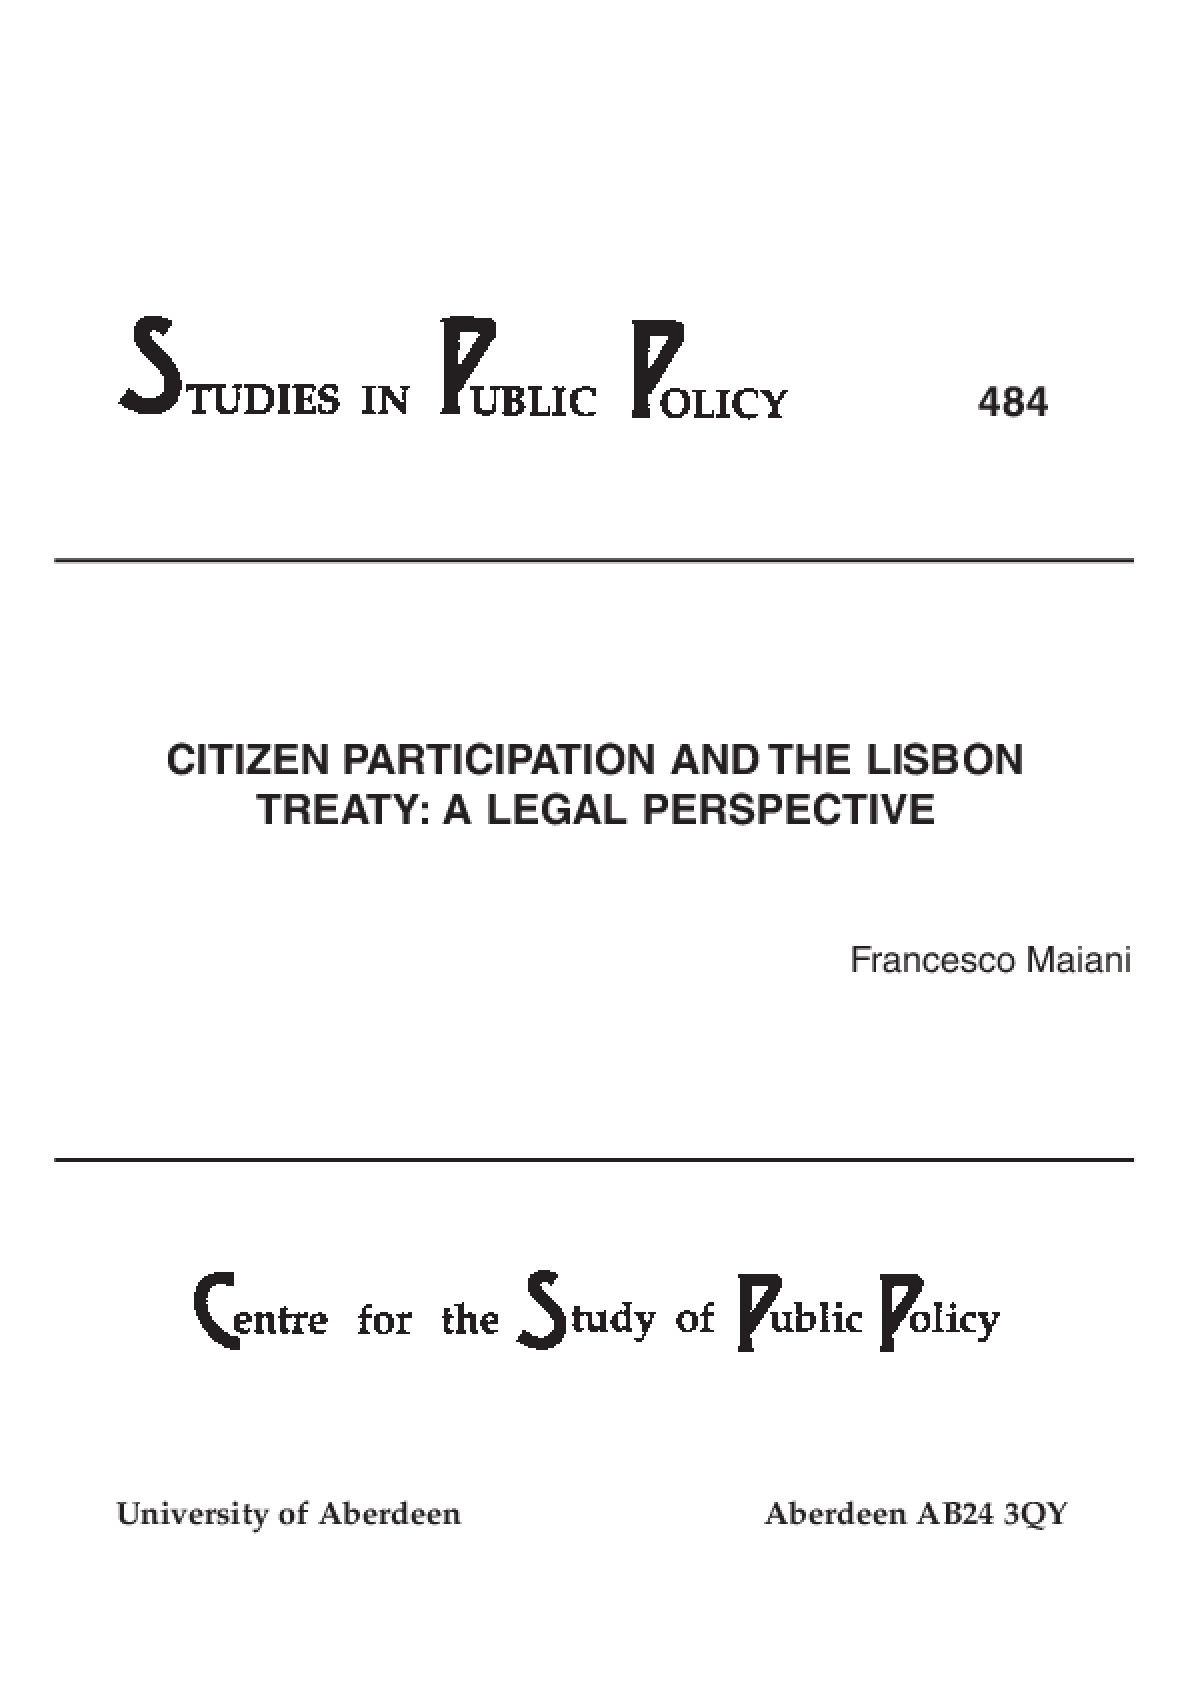 Citizen Participation and the Lisbon Treaty: A Legal Perspective